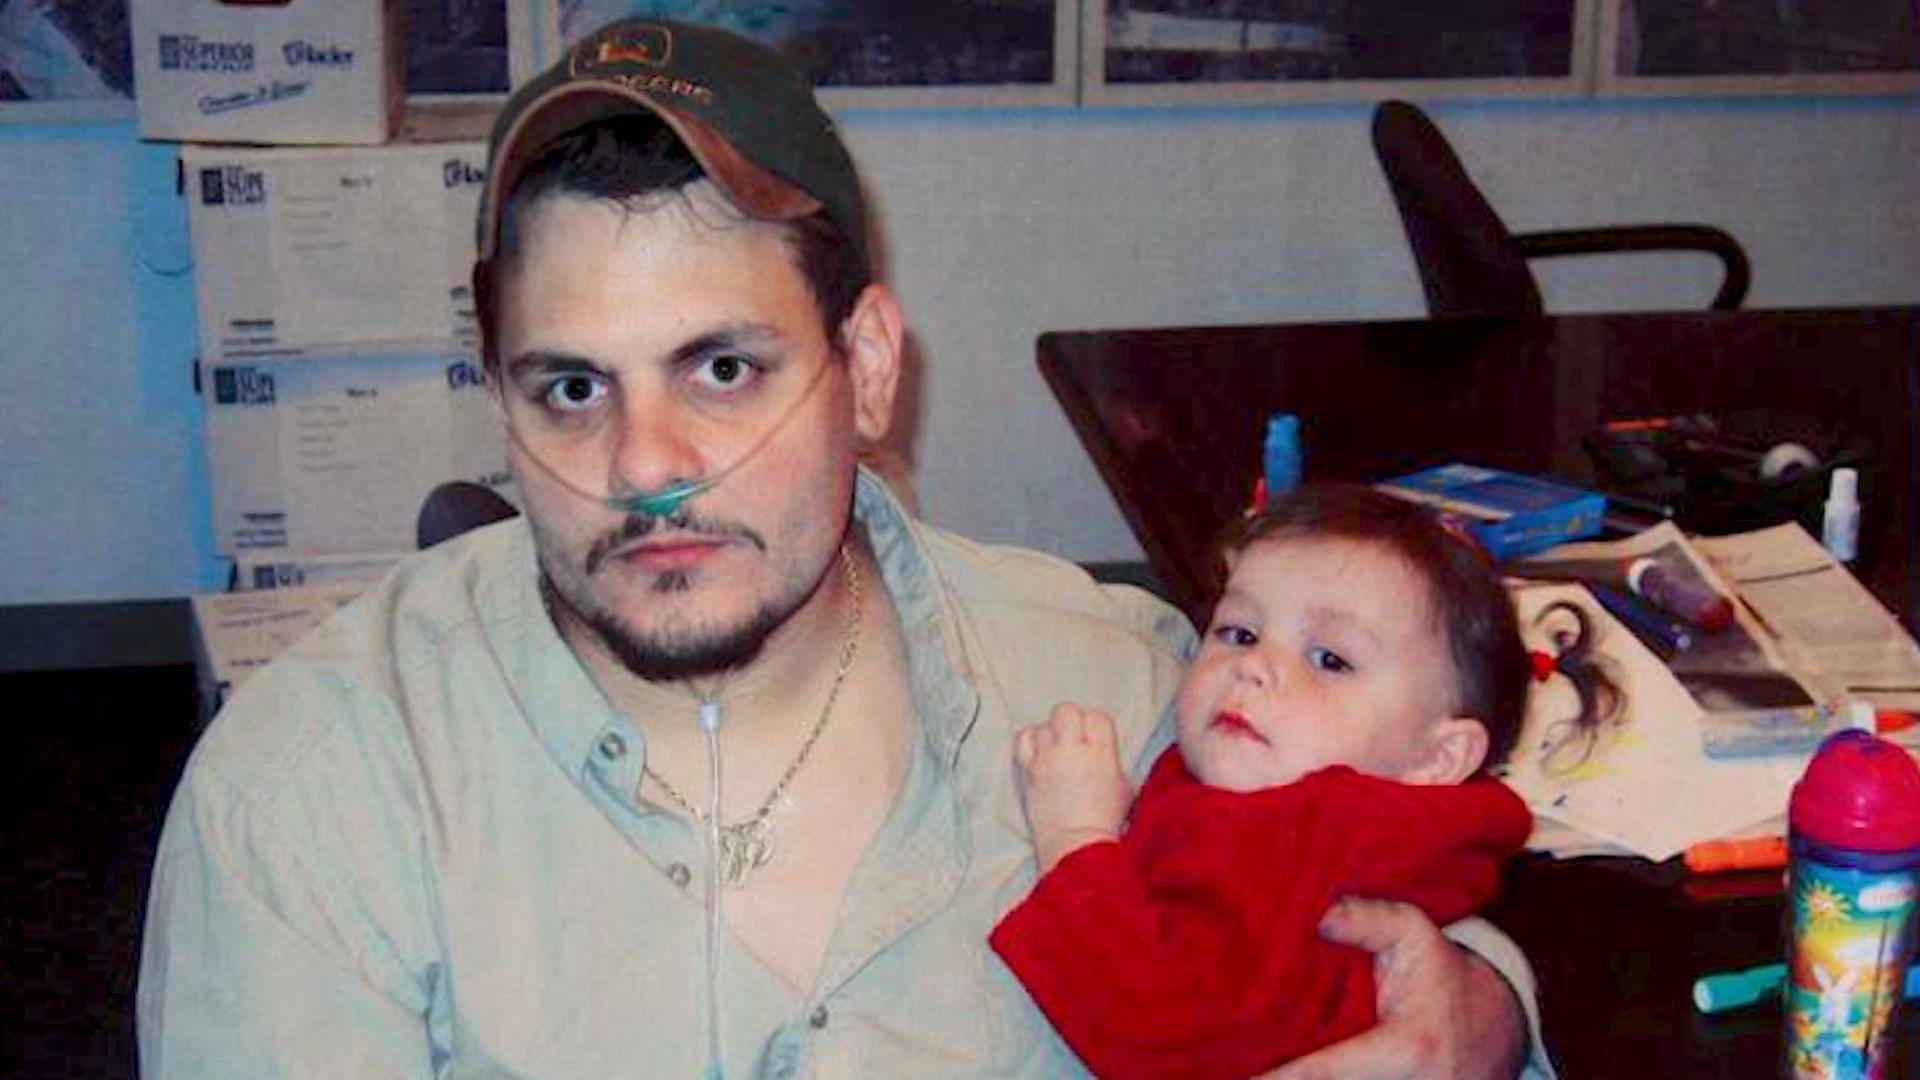 Read more about the article Joe Zadroga: My 9/11 Responder Son Died from Exposure to Ground Zero as Officials Denied Connection